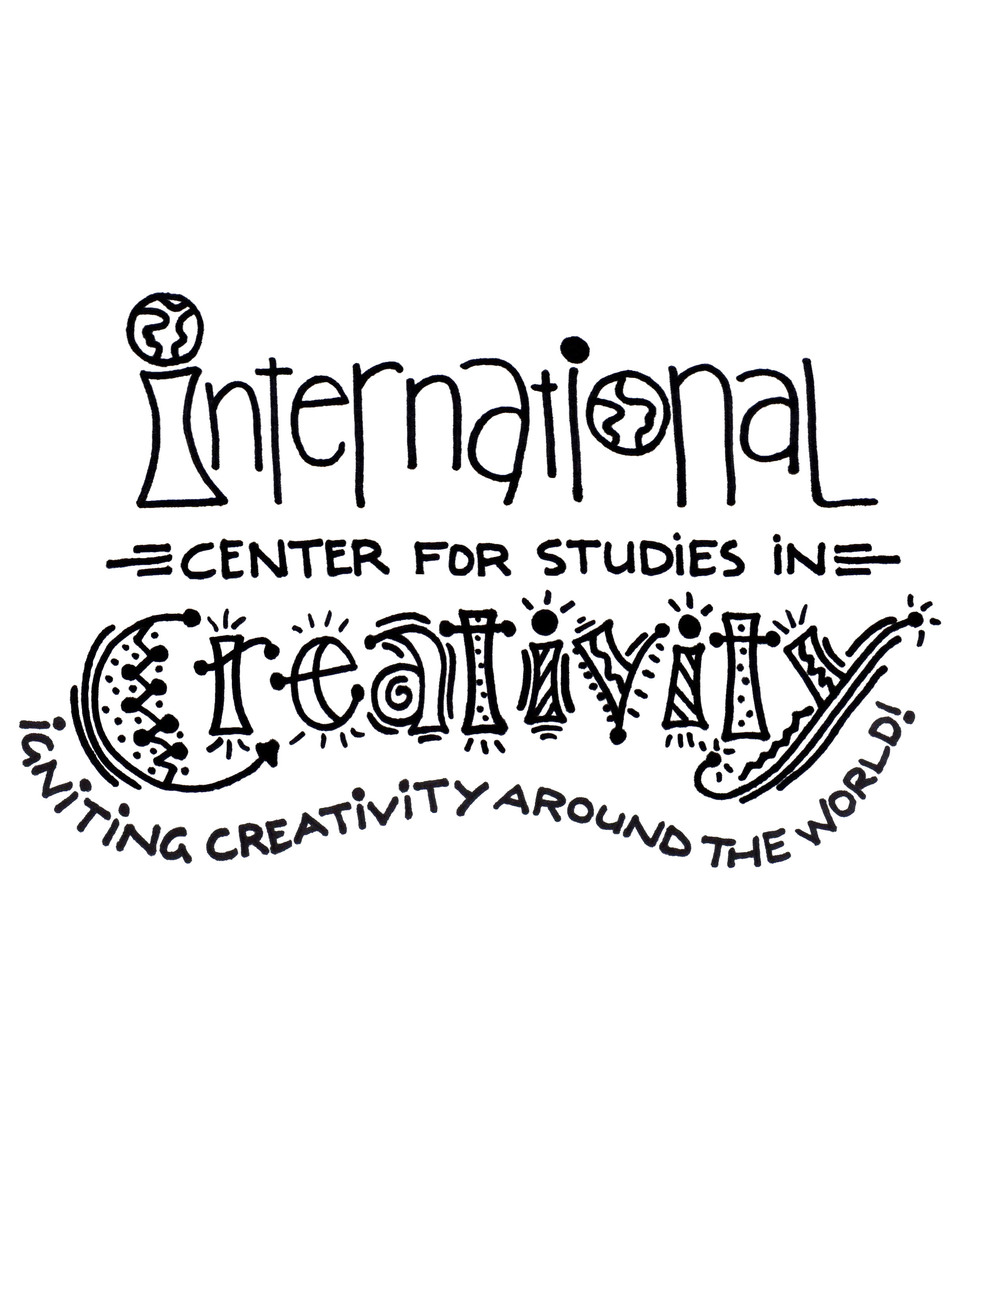 International Center for Studies in Creativity